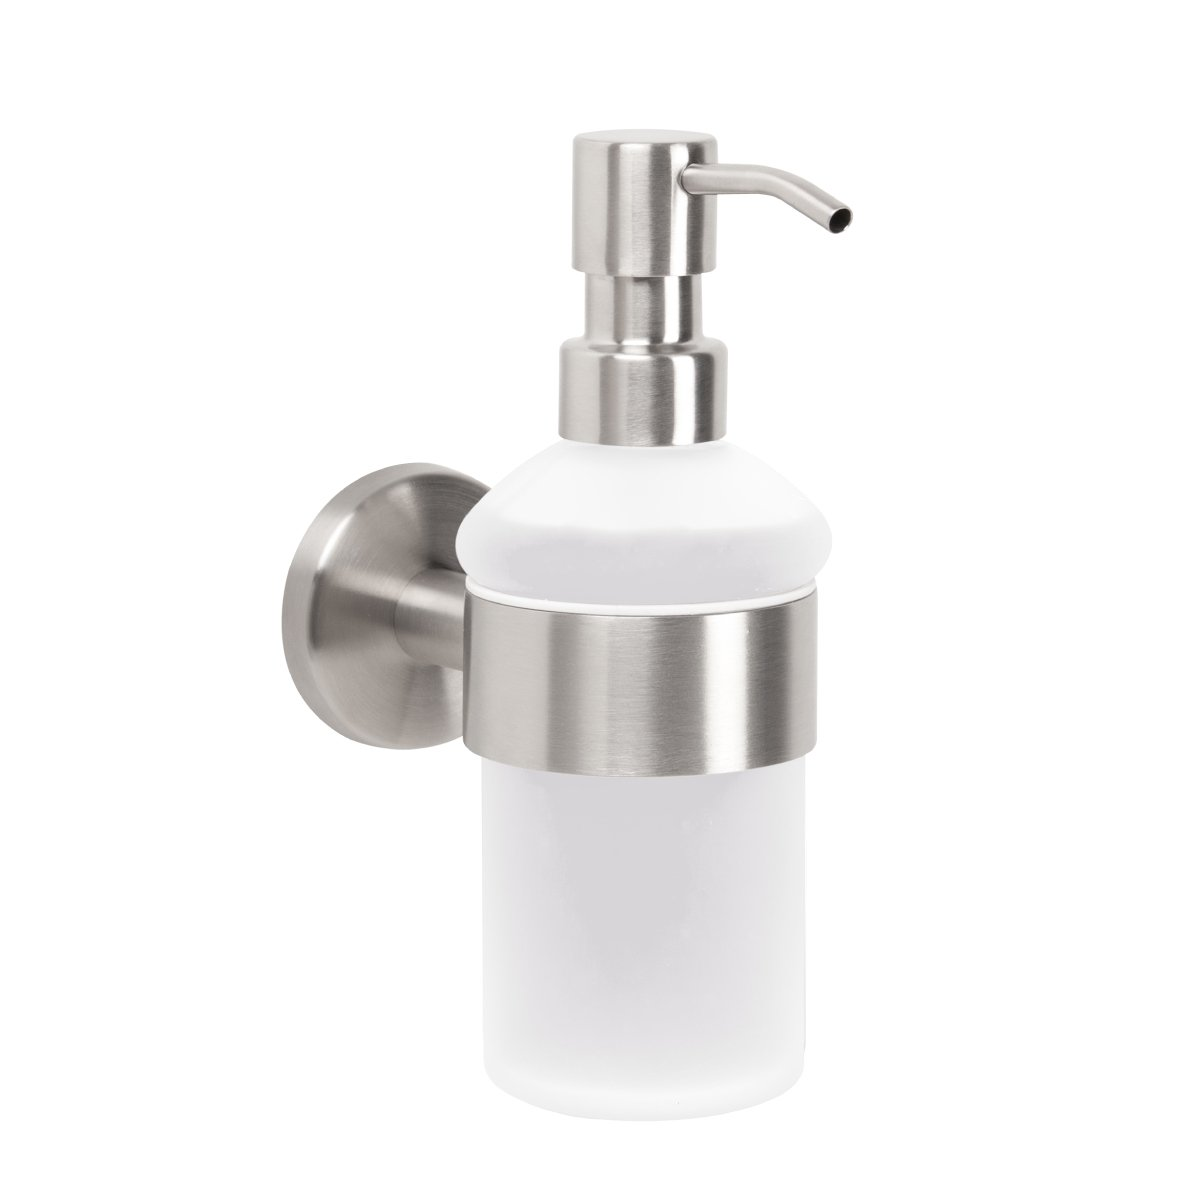 bremermann reg; PIAZZA bathroom series – soap dispenser made of glass and stainless steel, matte 9418